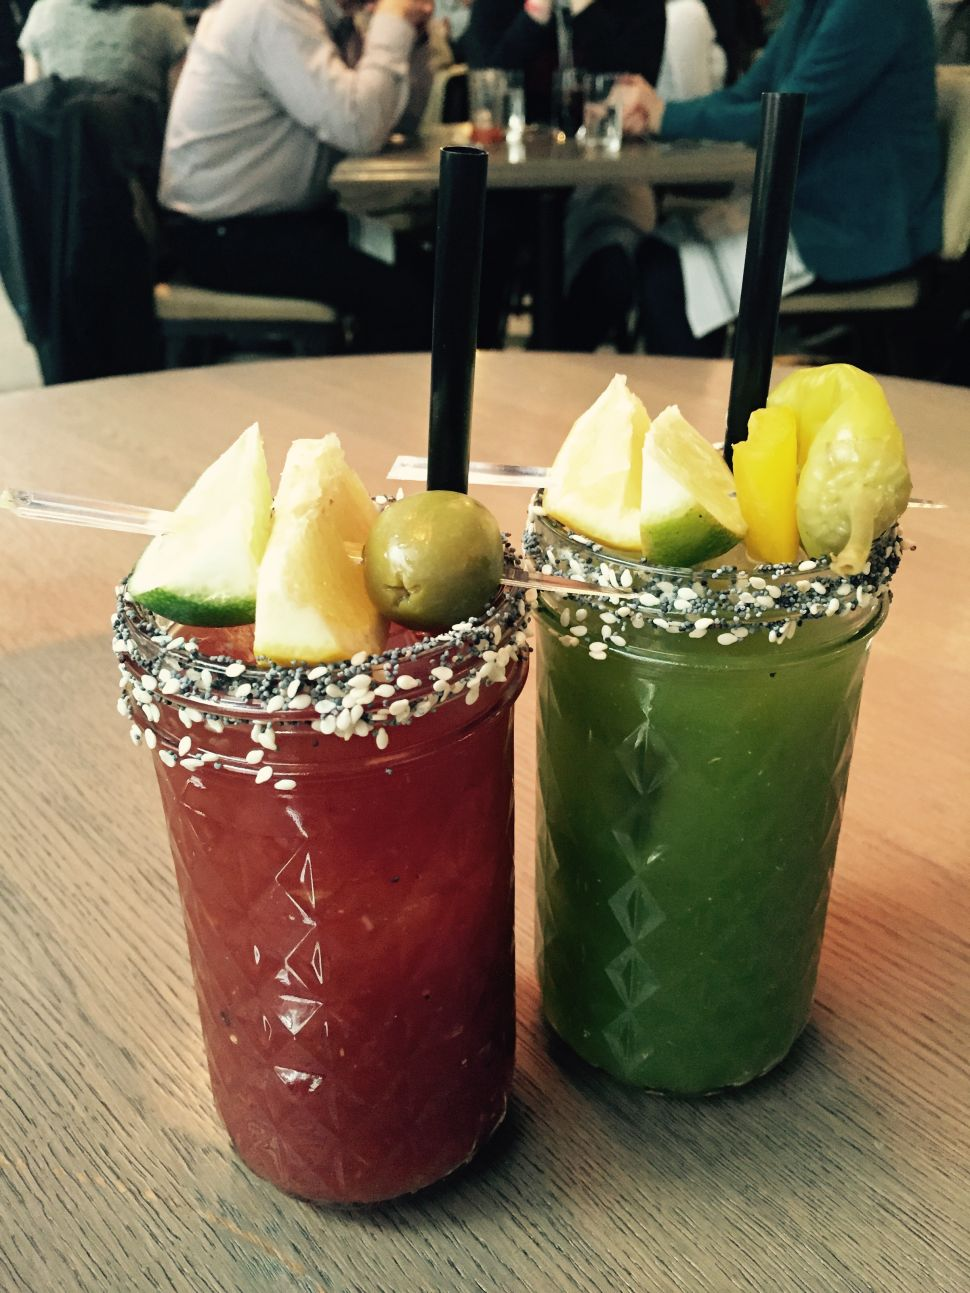 Kale Mary! Boozy Brunch Gets a 'Build-Your-Own' Reboot in NYC